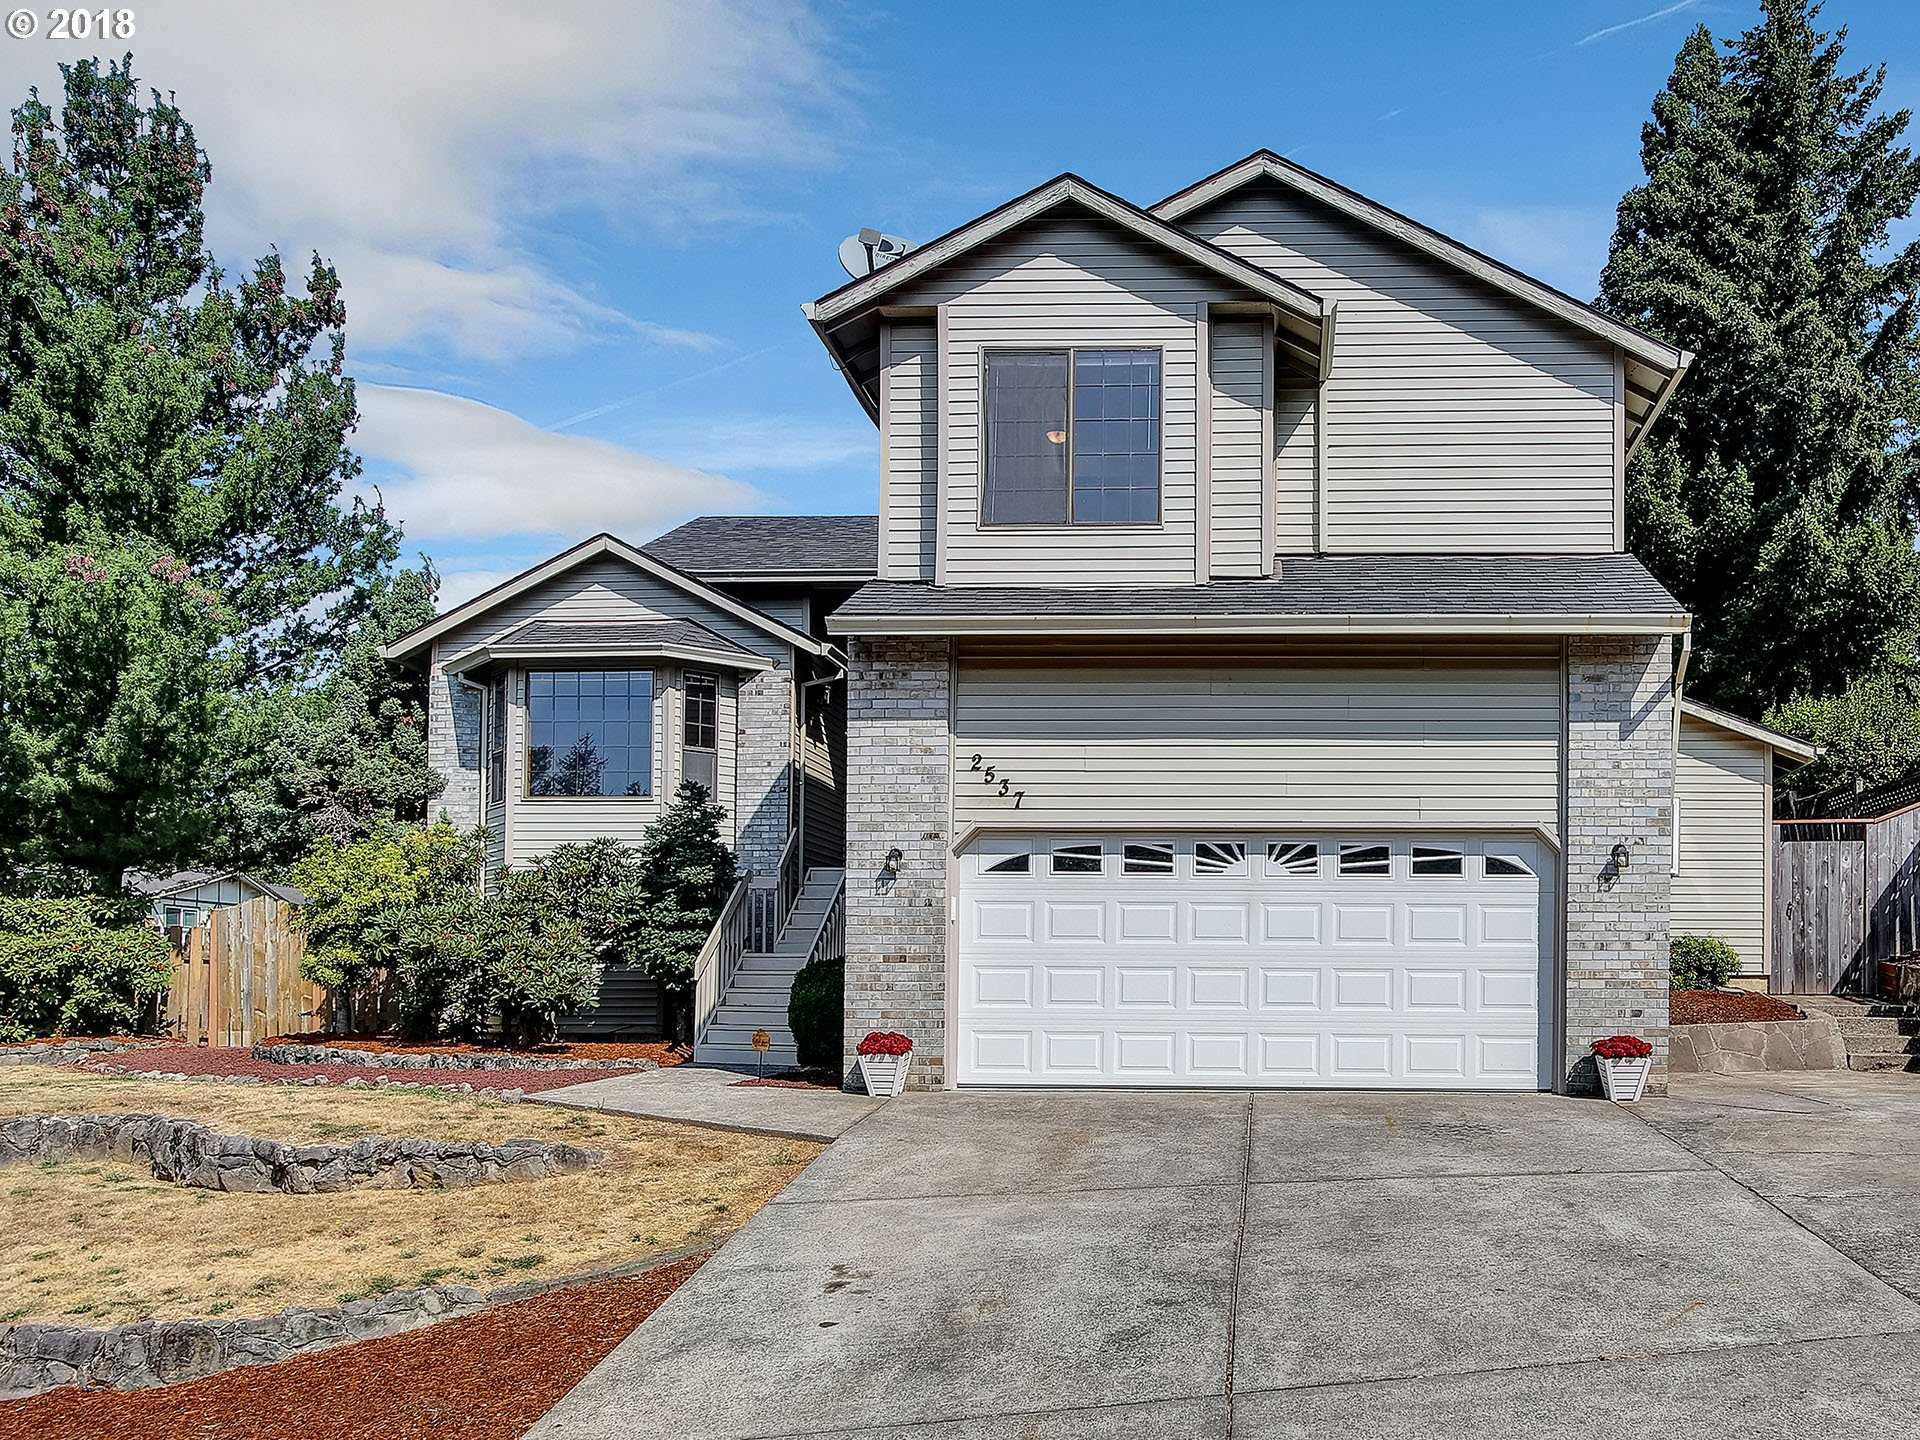 $369,900 - 3Br/3Ba -  for Sale in Gresham - Southwest, Gresham